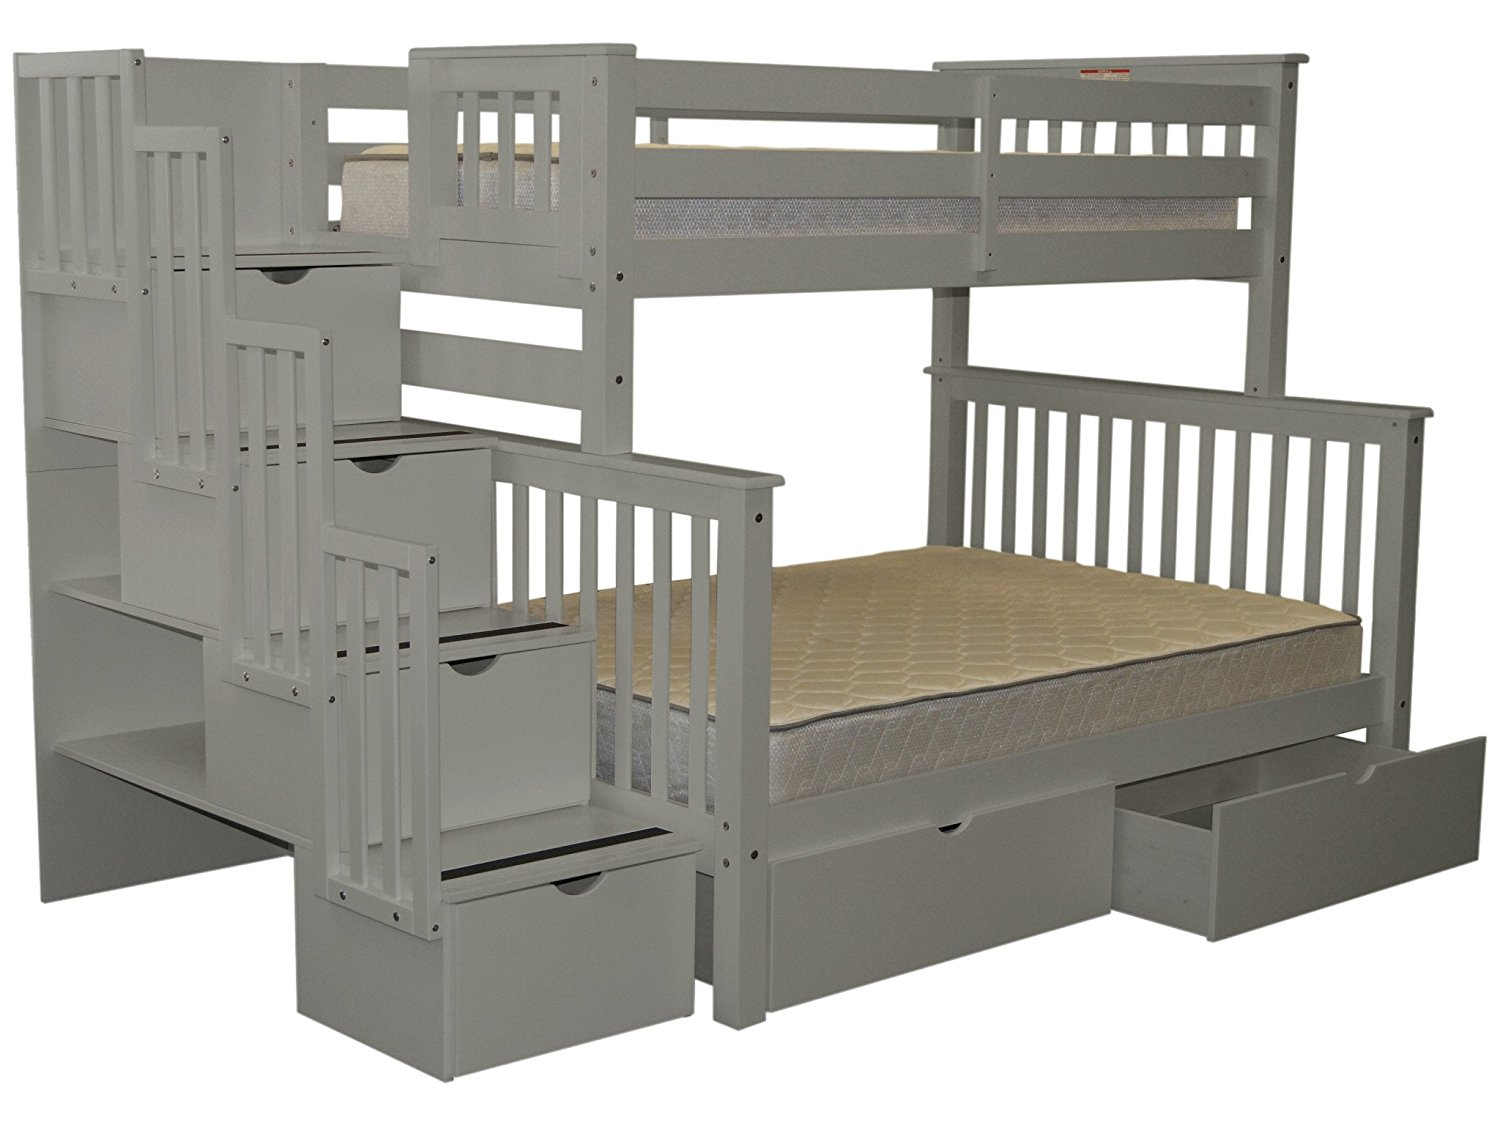 Buy Bedz King Stairway Bunk Beds Twin Over Full With 4 Drawers In